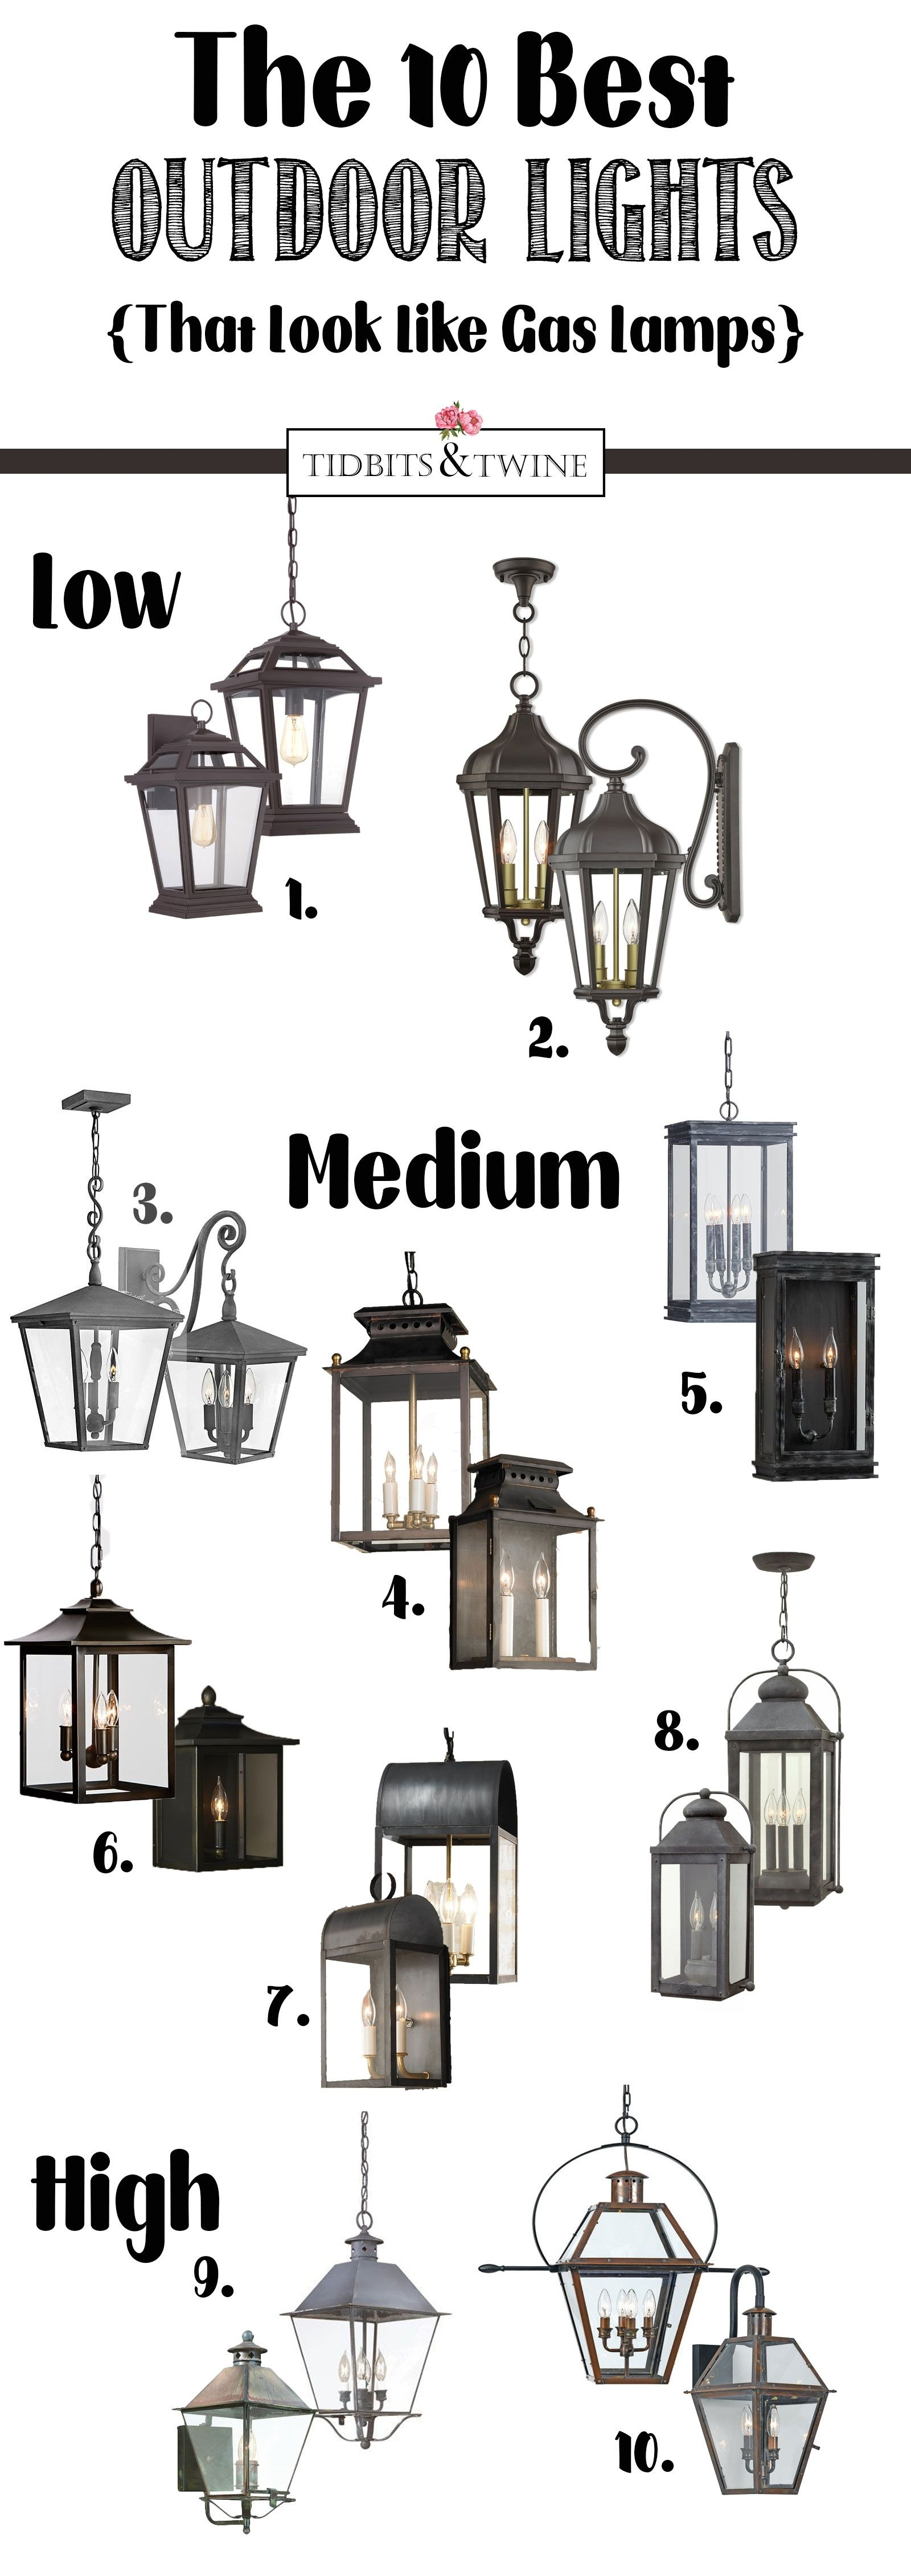 The Best Outdoor Hanging Lantern & Sconce Sets | Decorating Tips within Outdoor Hanging Electric Lanterns (Image 20 of 20)